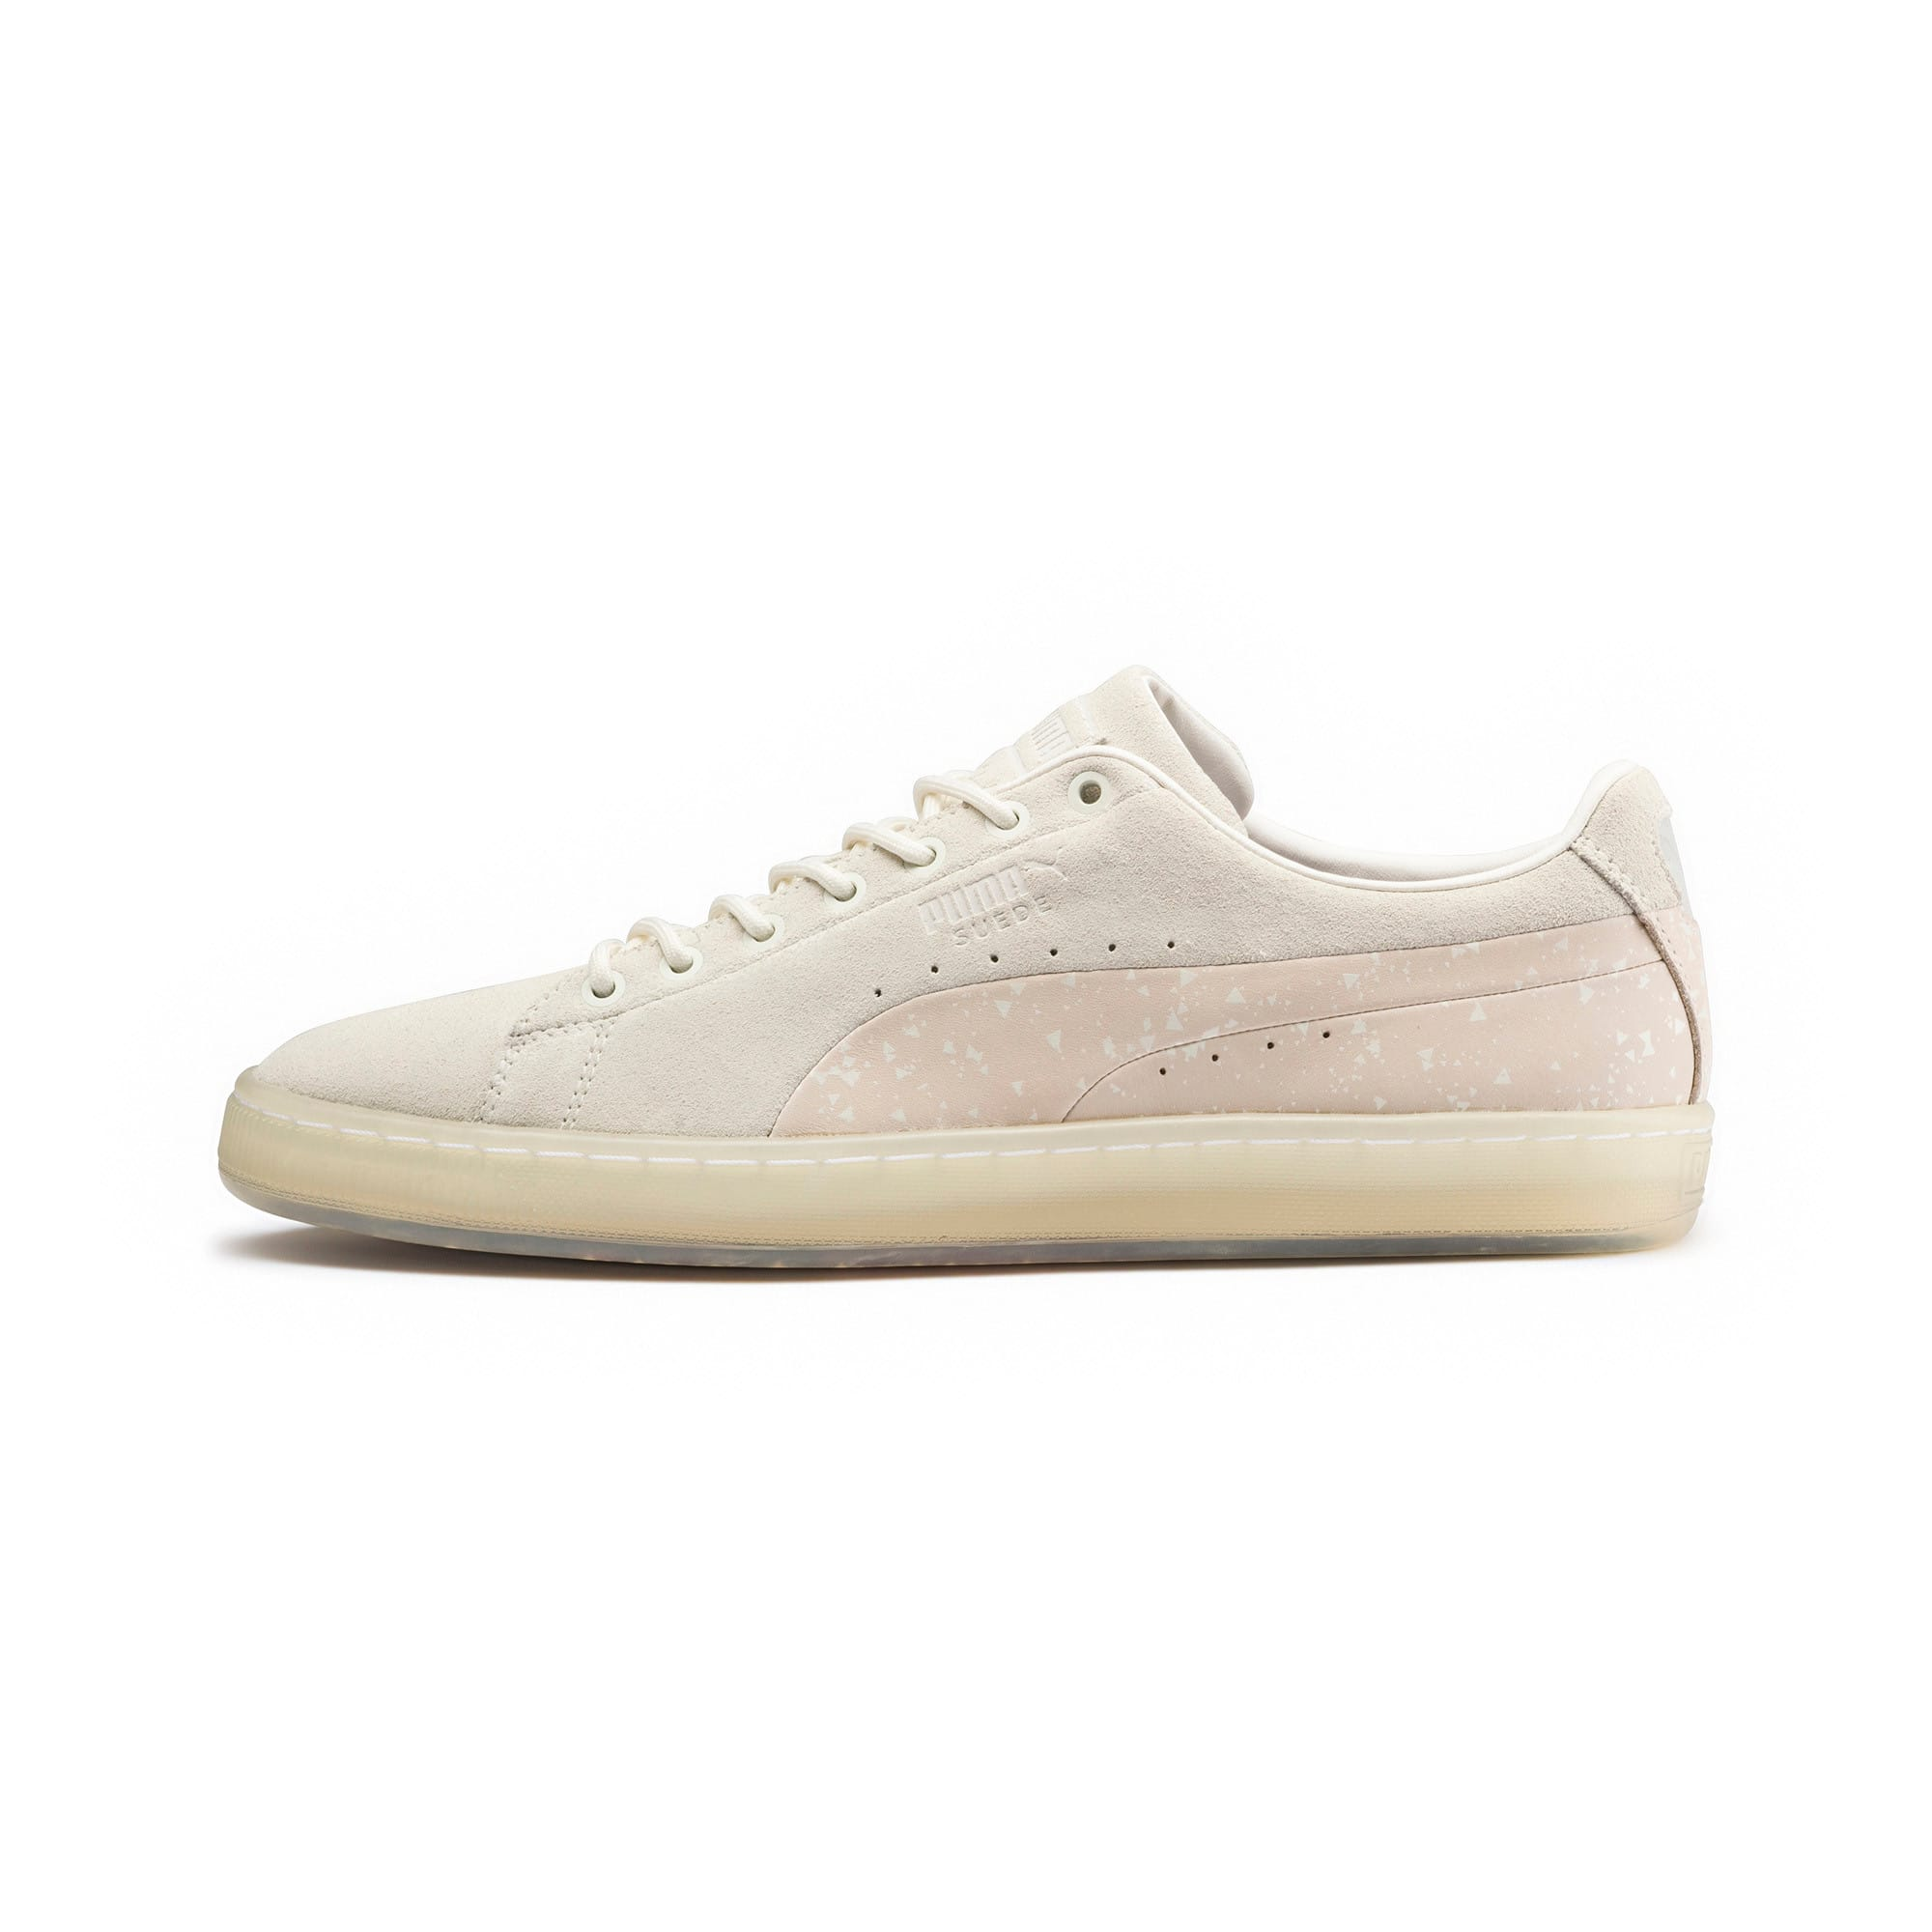 Thumbnail 1 of PUMA x NATUREL Suede Sneakers, Whisper White-Almond, medium